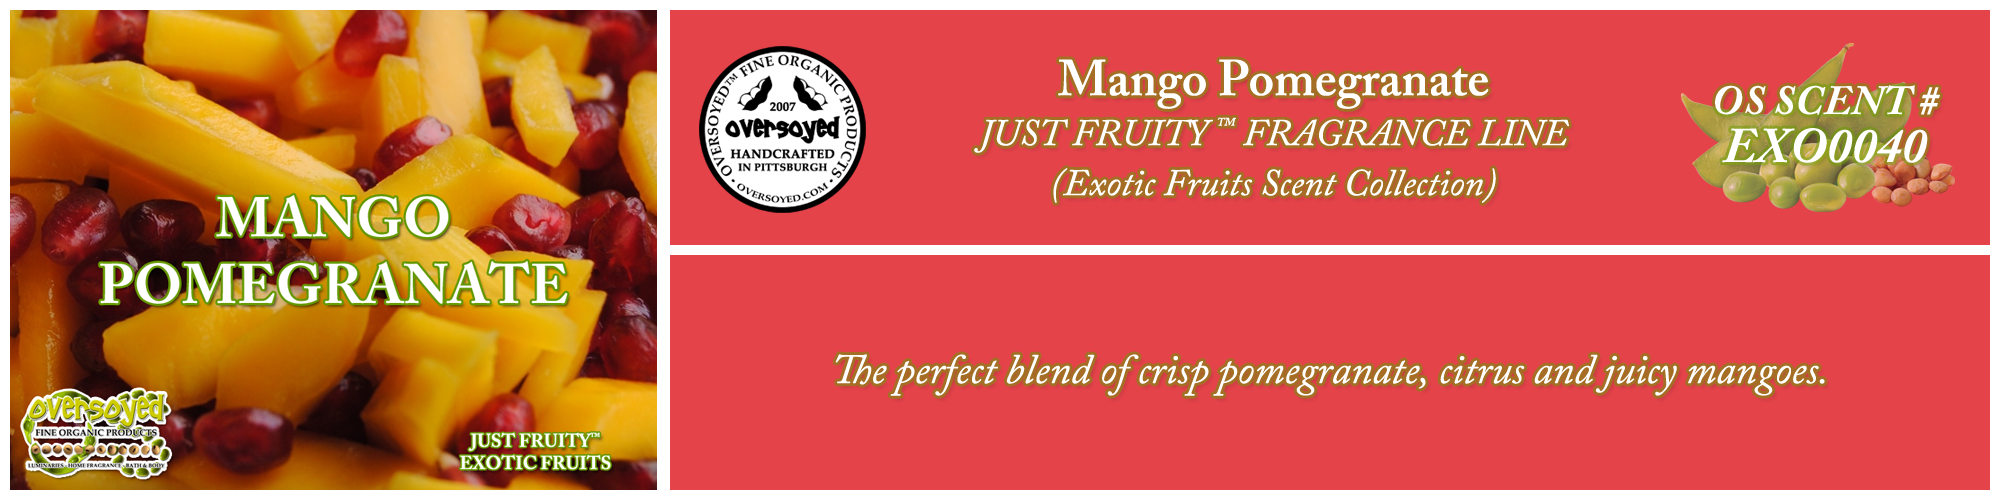 Mango Pomegranate Handcrafted Products Collection